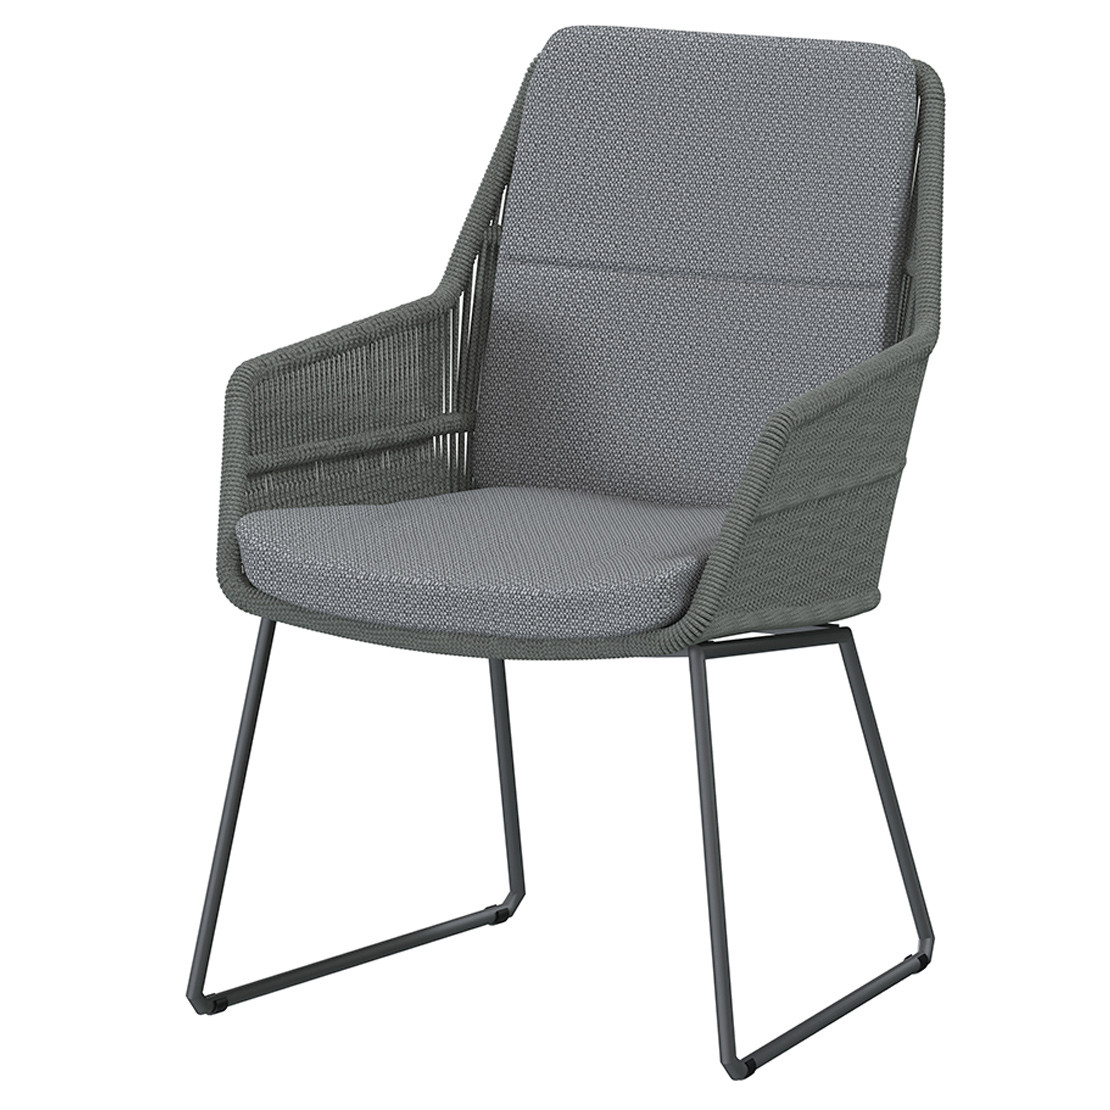 Valencia dining chair Platinum with 2 cushions